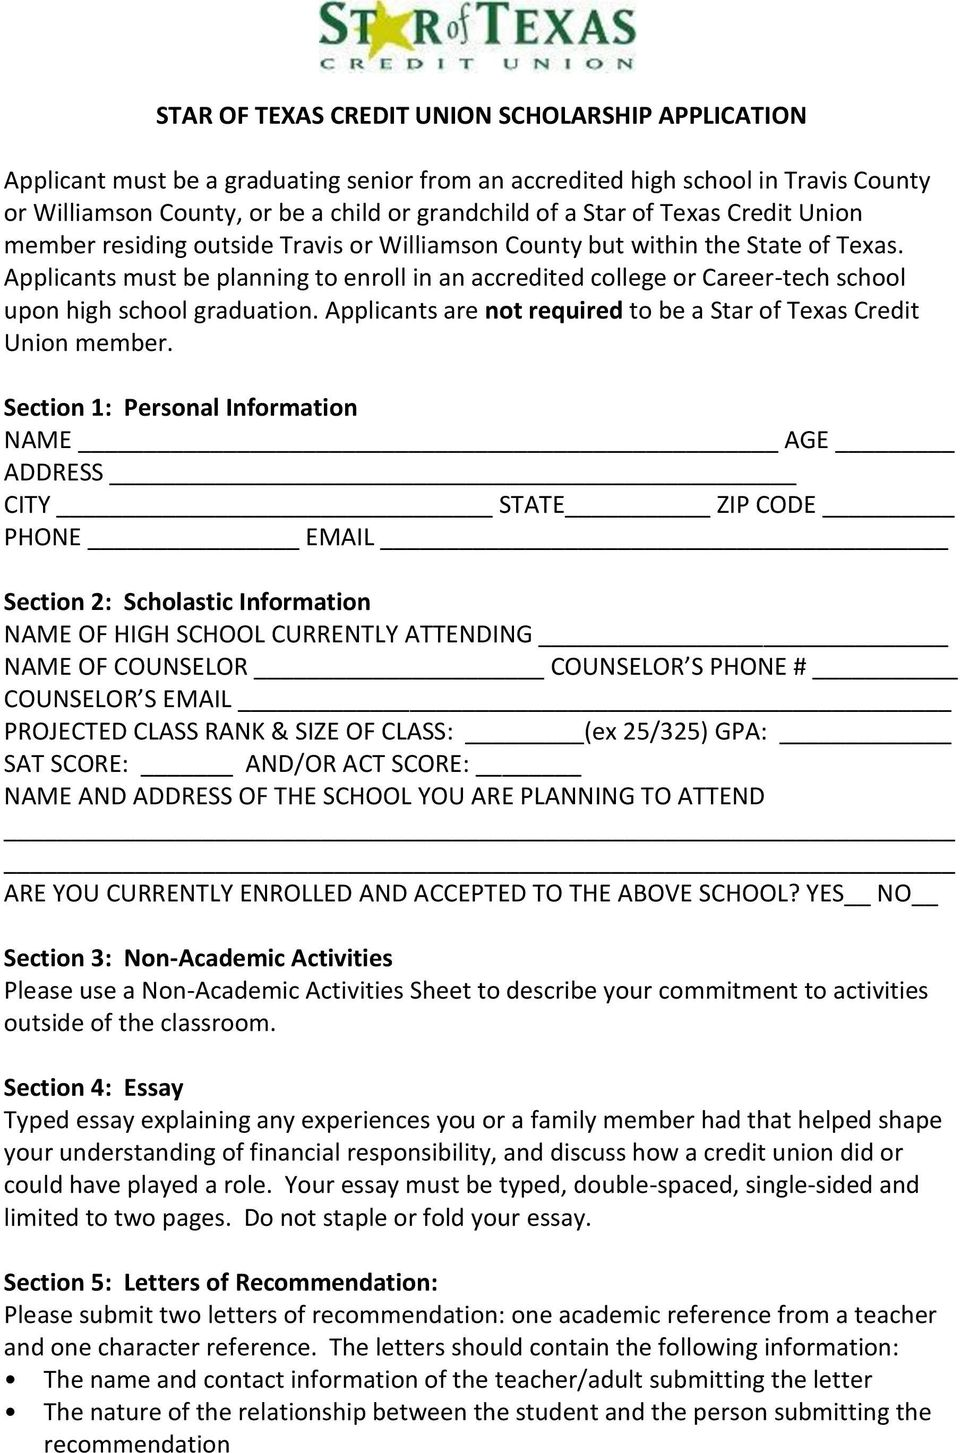 Applicants must be planning to enroll in an accredited college or Career-tech school upon high school graduation. Applicants are not required to be a Star of Texas Credit Union member.